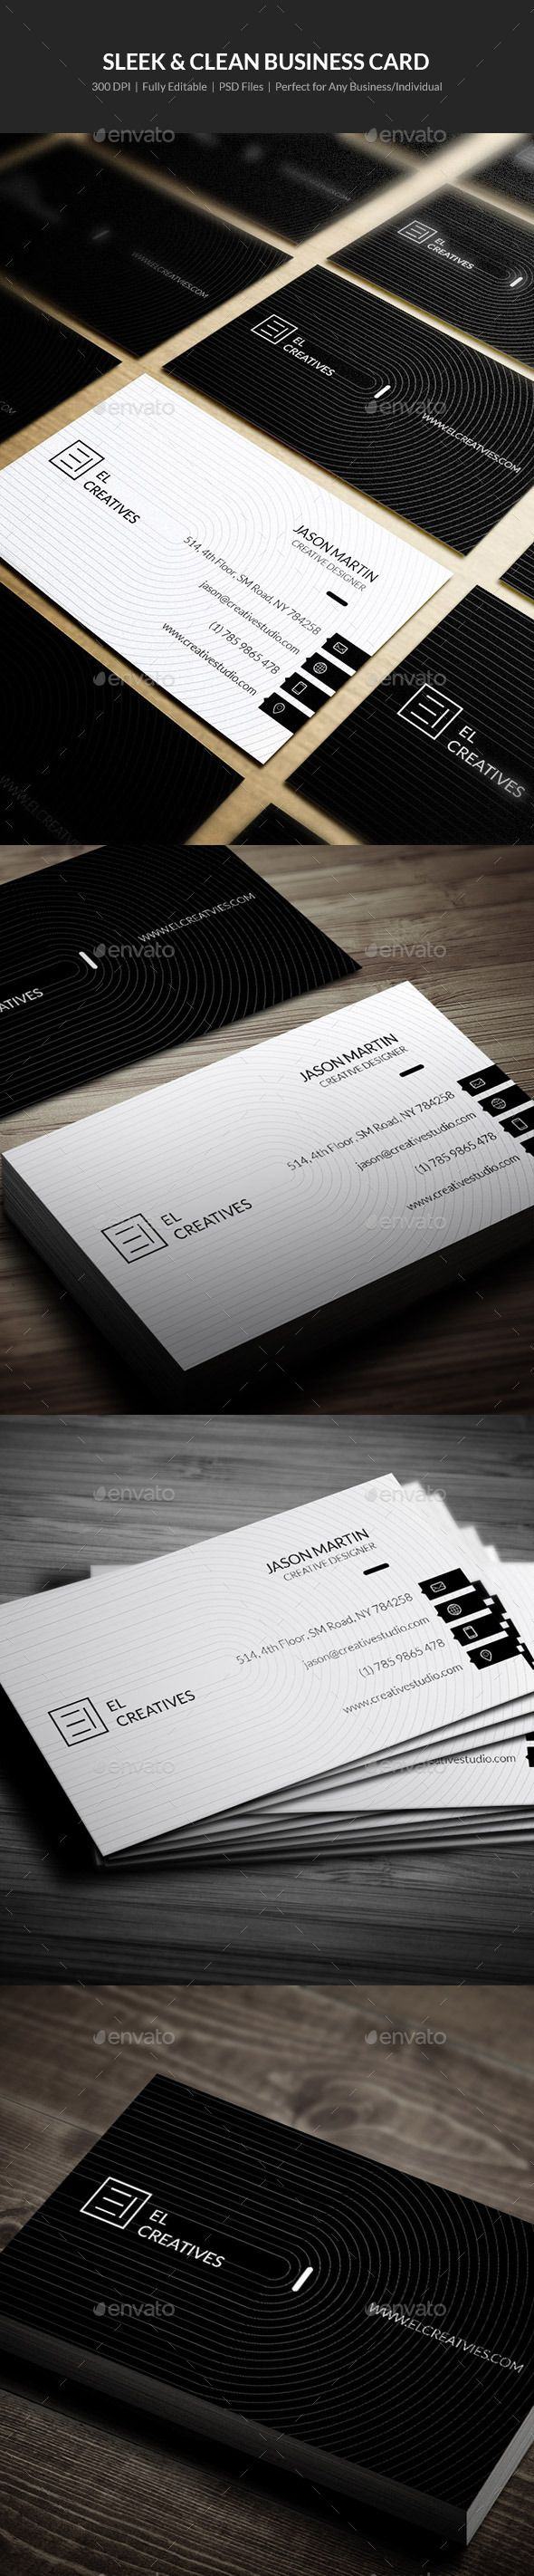 The 25 best cleaning business cards ideas on pinterest elegant sleek clean business card 15 magicingreecefo Choice Image